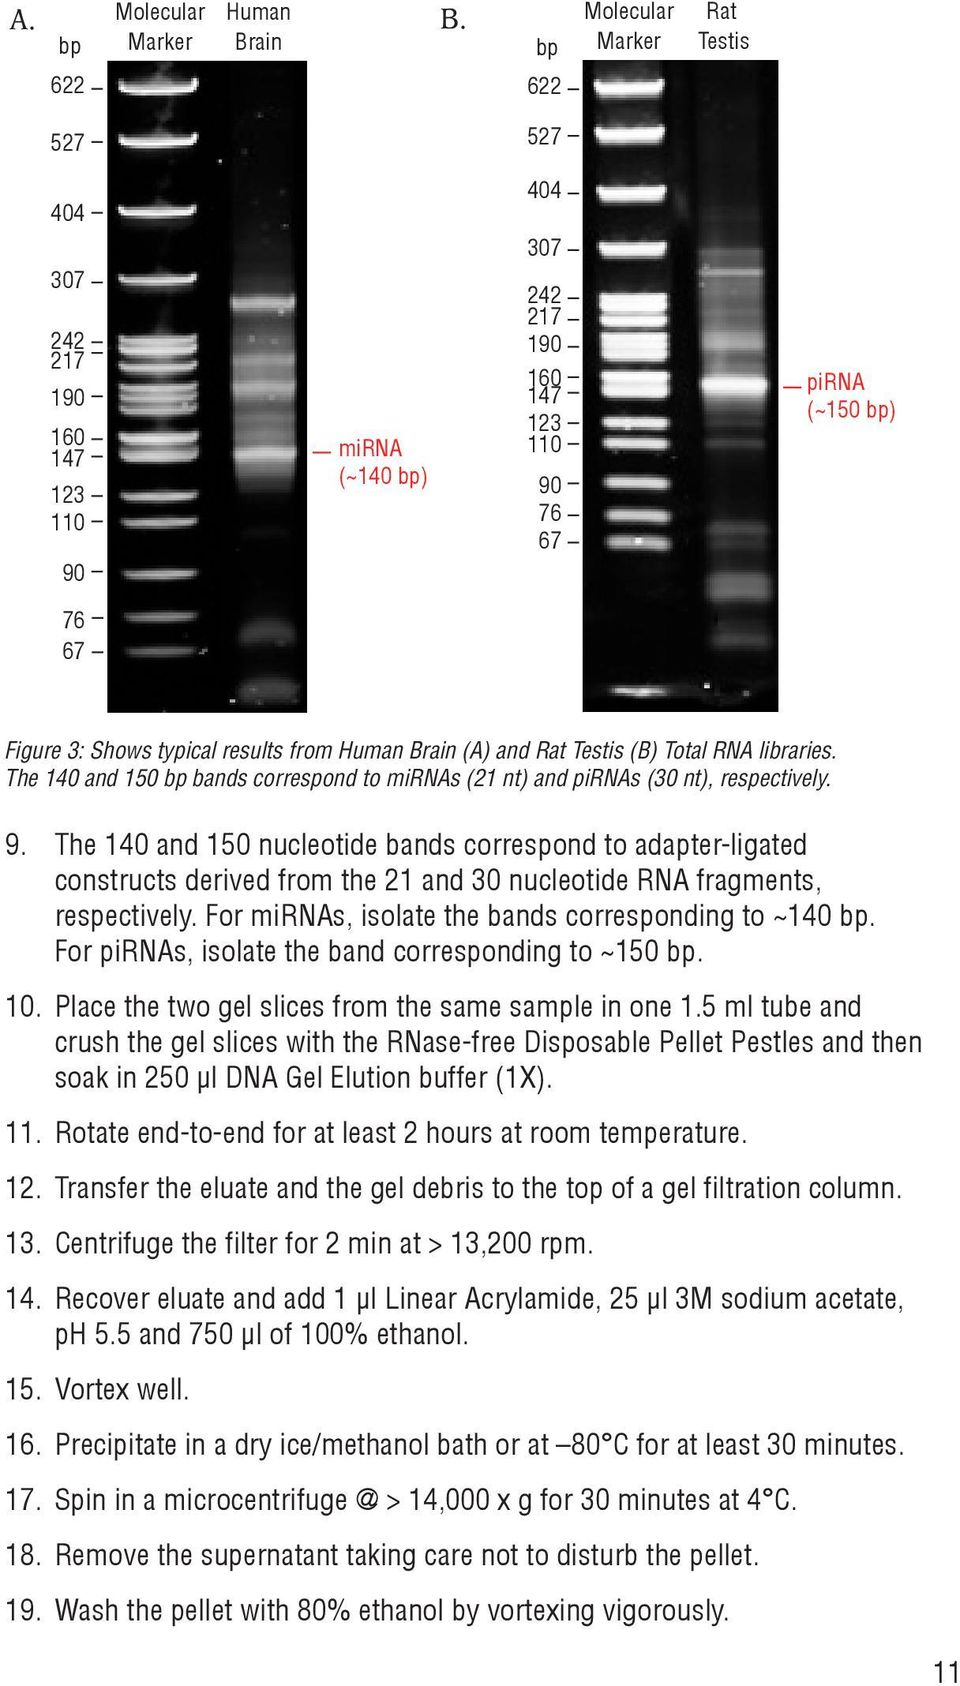 results from Human Brain (A) and Rat Testis (B) Total RNA libraries. The 140 and 150 bp bands correspond to mirnas (21 nt) and pirnas (30 nt), respectively. 9.